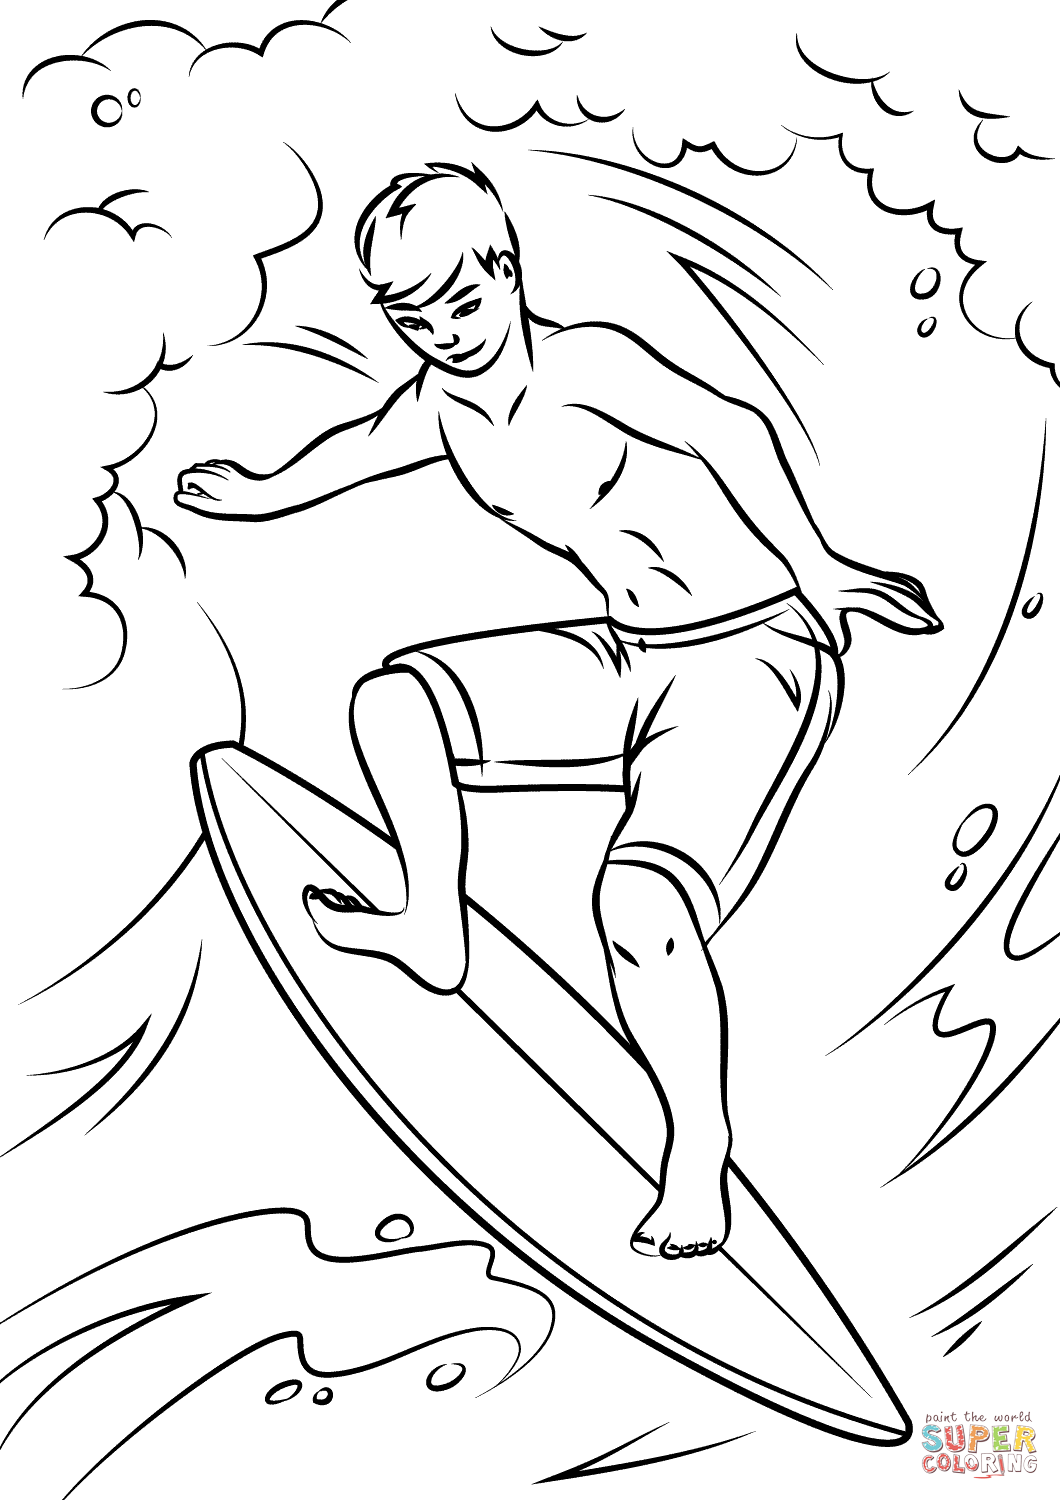 Waves Coloring Page At Getcolorings